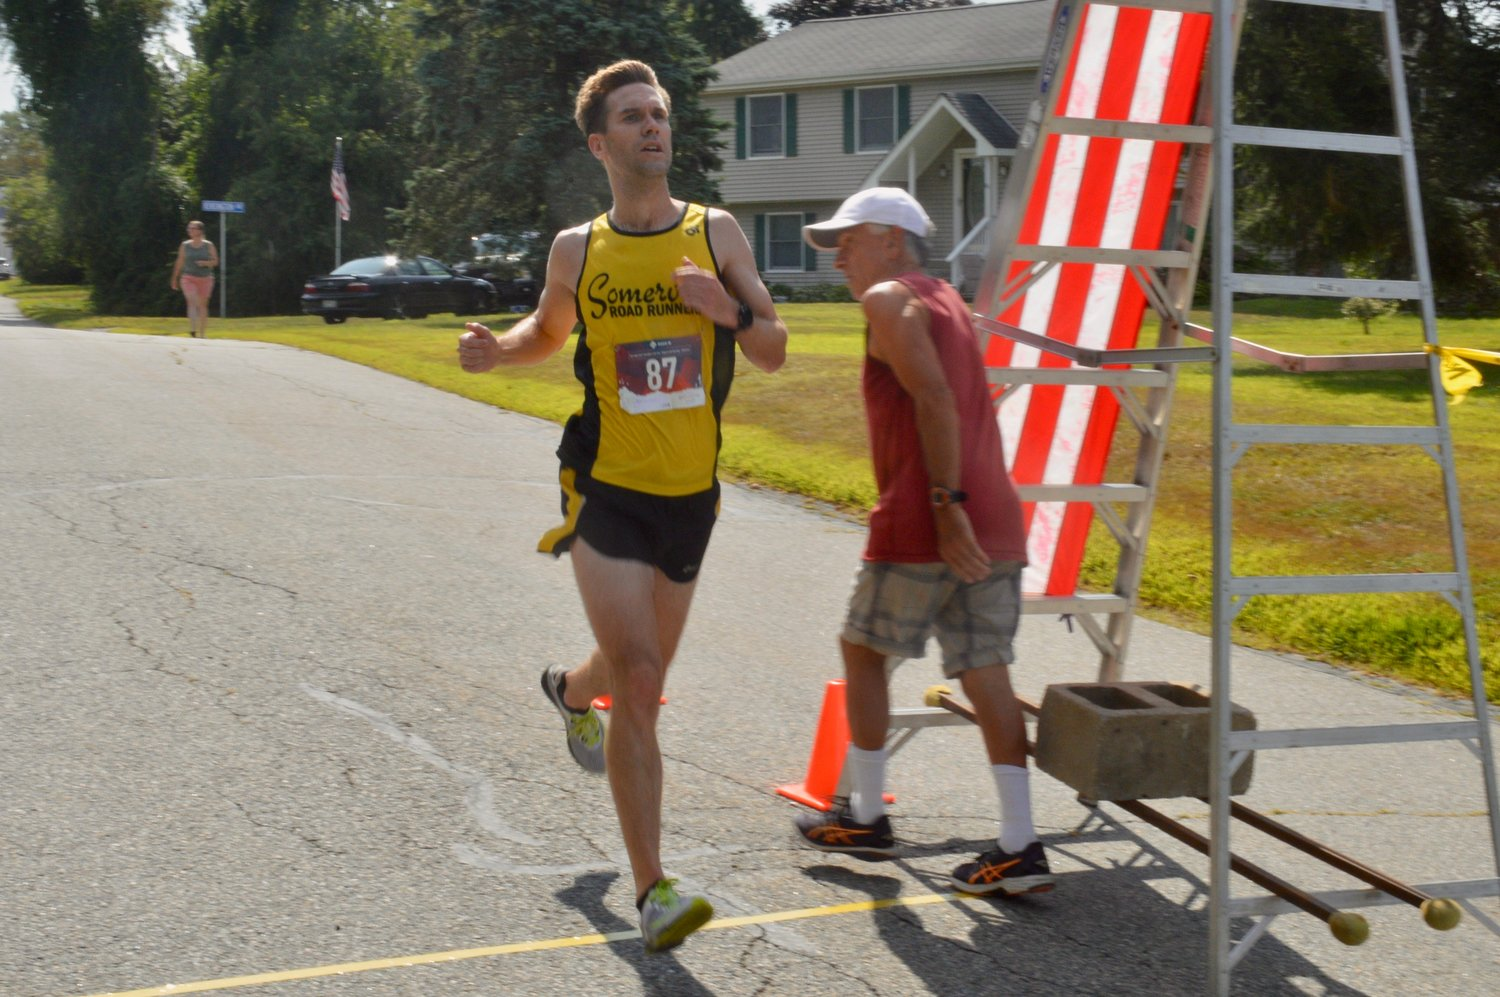 Christopher Kluczni, 37, of Needham, Mass., took second place in a time of 27:35.